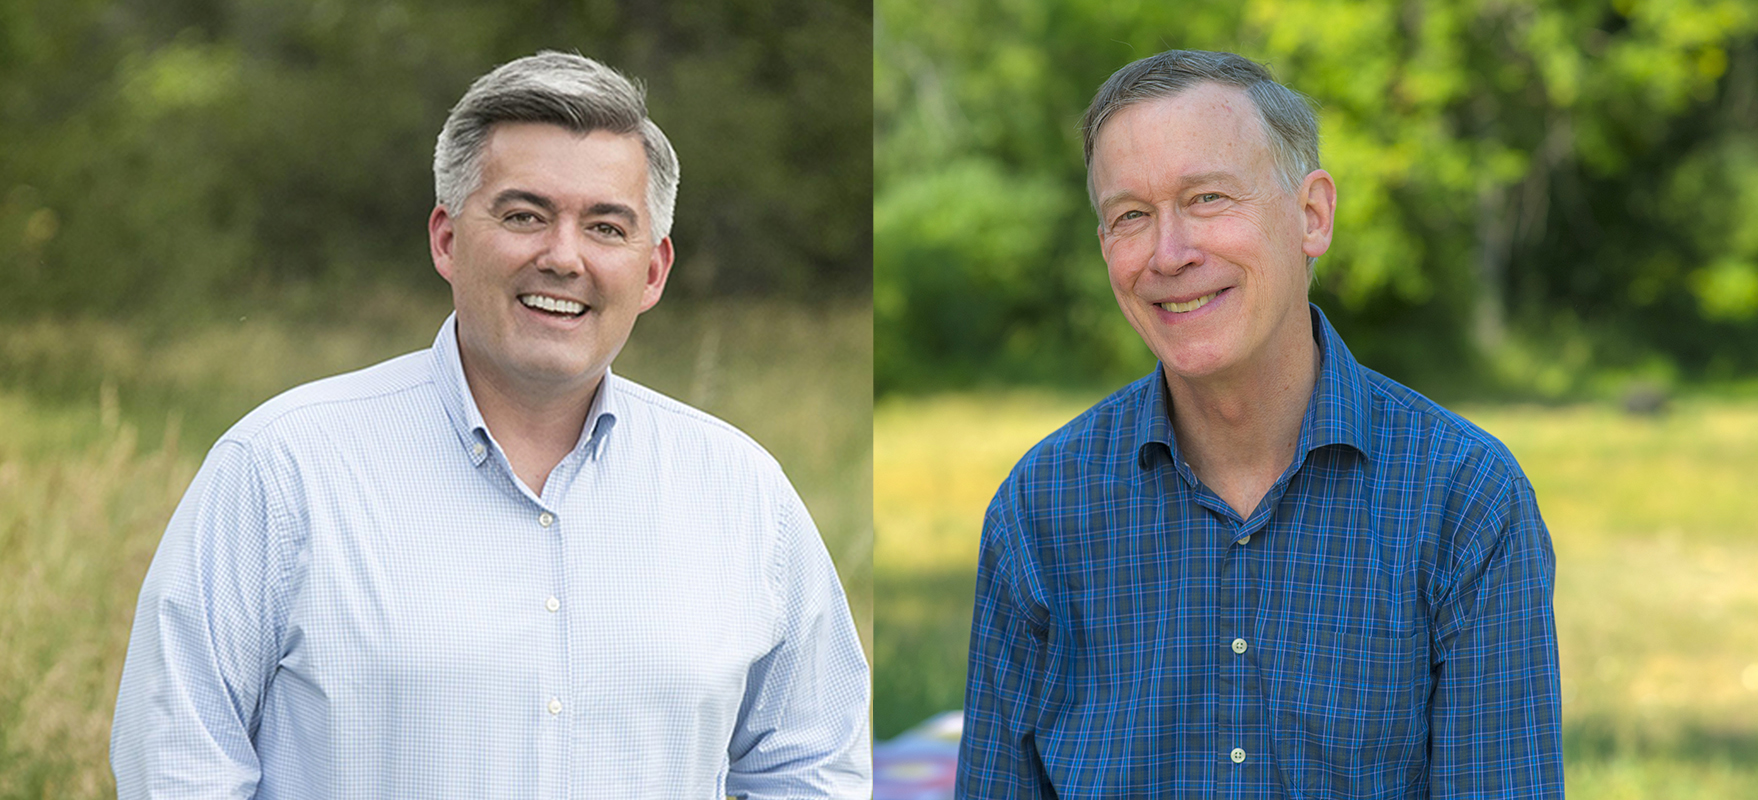 Gardner y Hickenlooper al natural Gardner and Hickenlooper